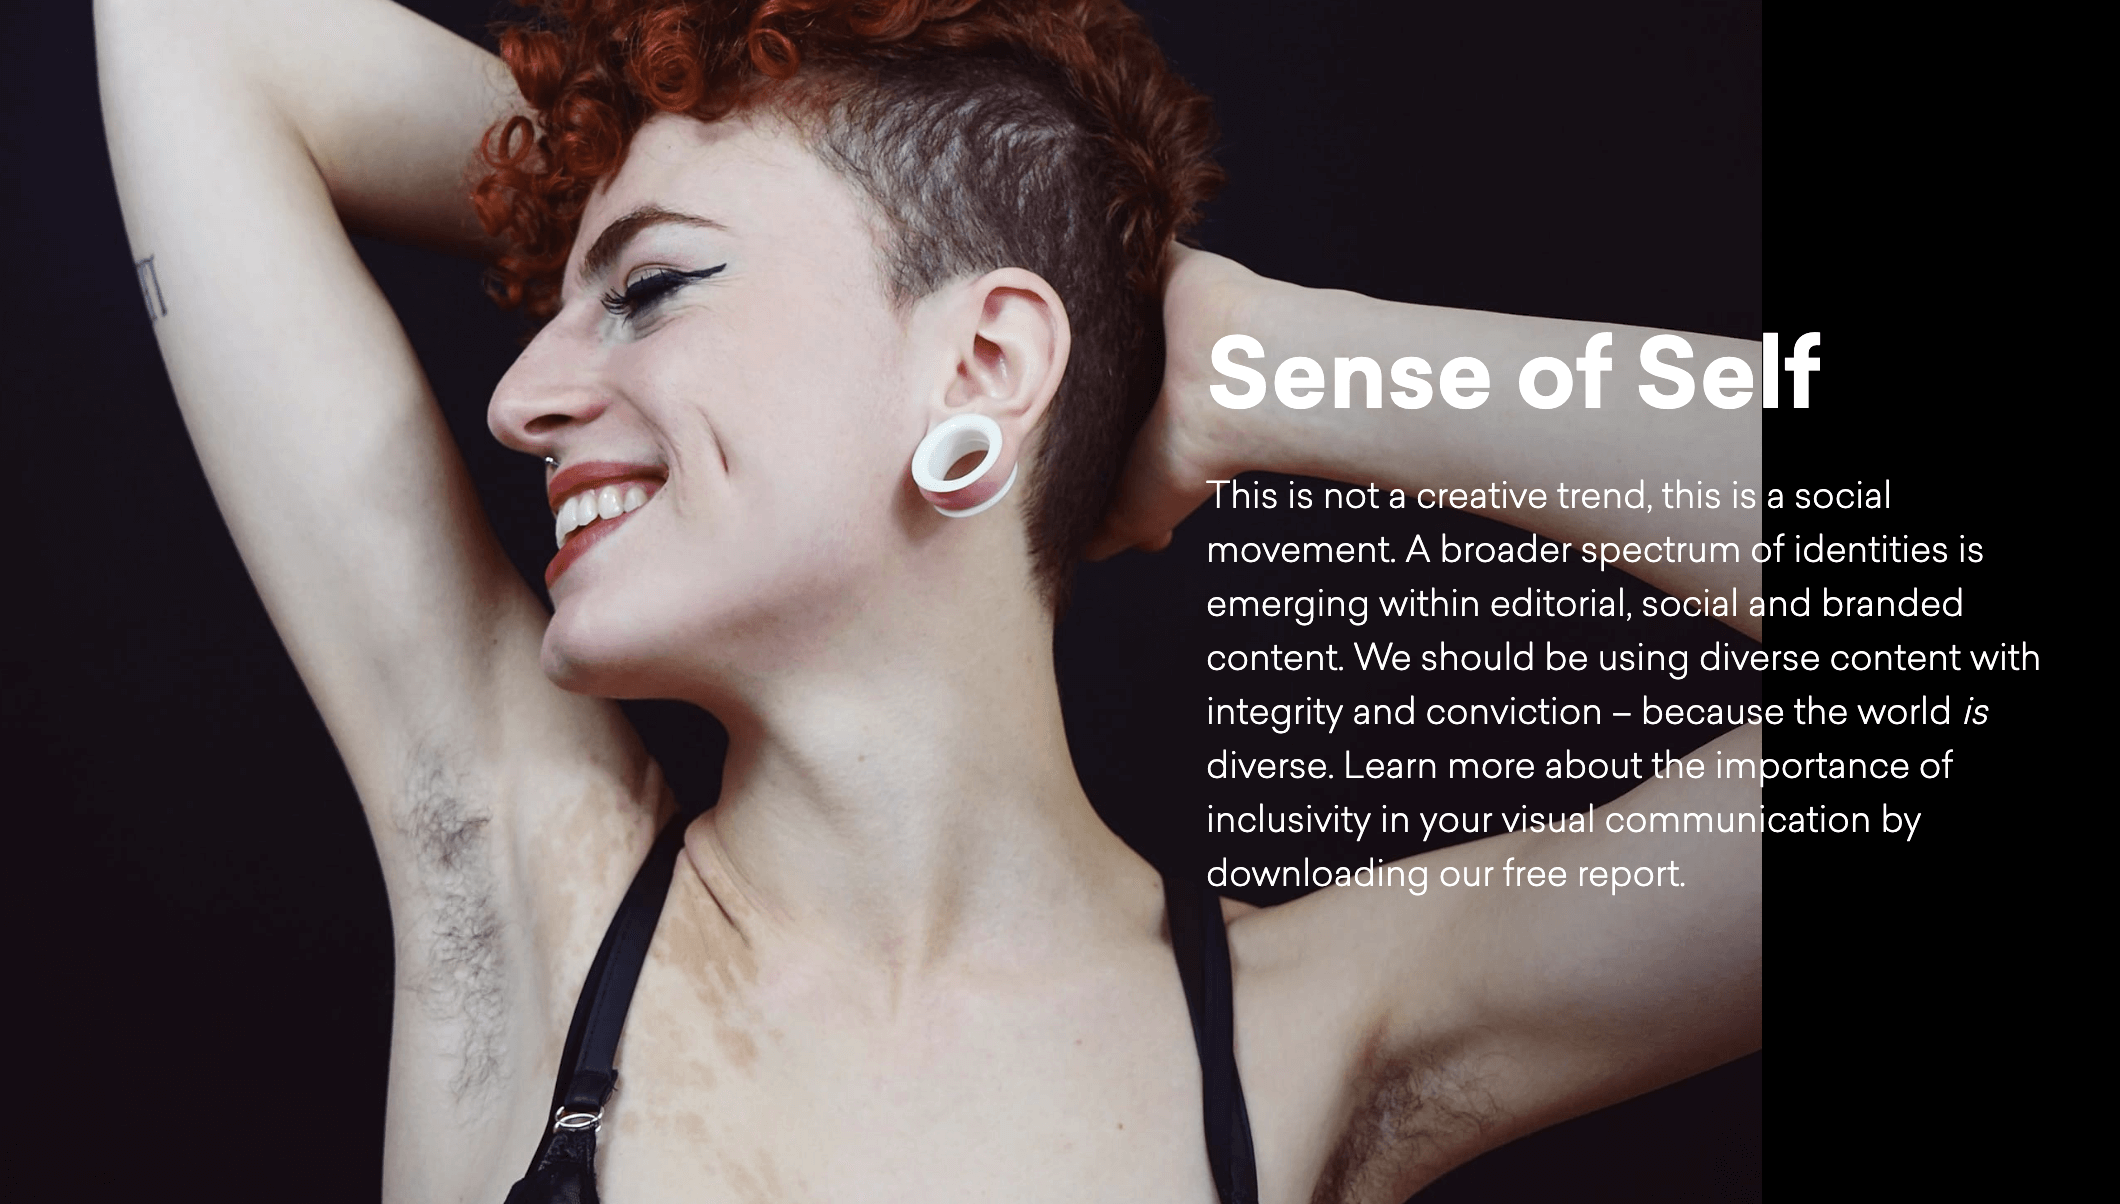 Woman smiling with visable body hair representing gender neutral stock photograph by Sol Vázquez EyeEm